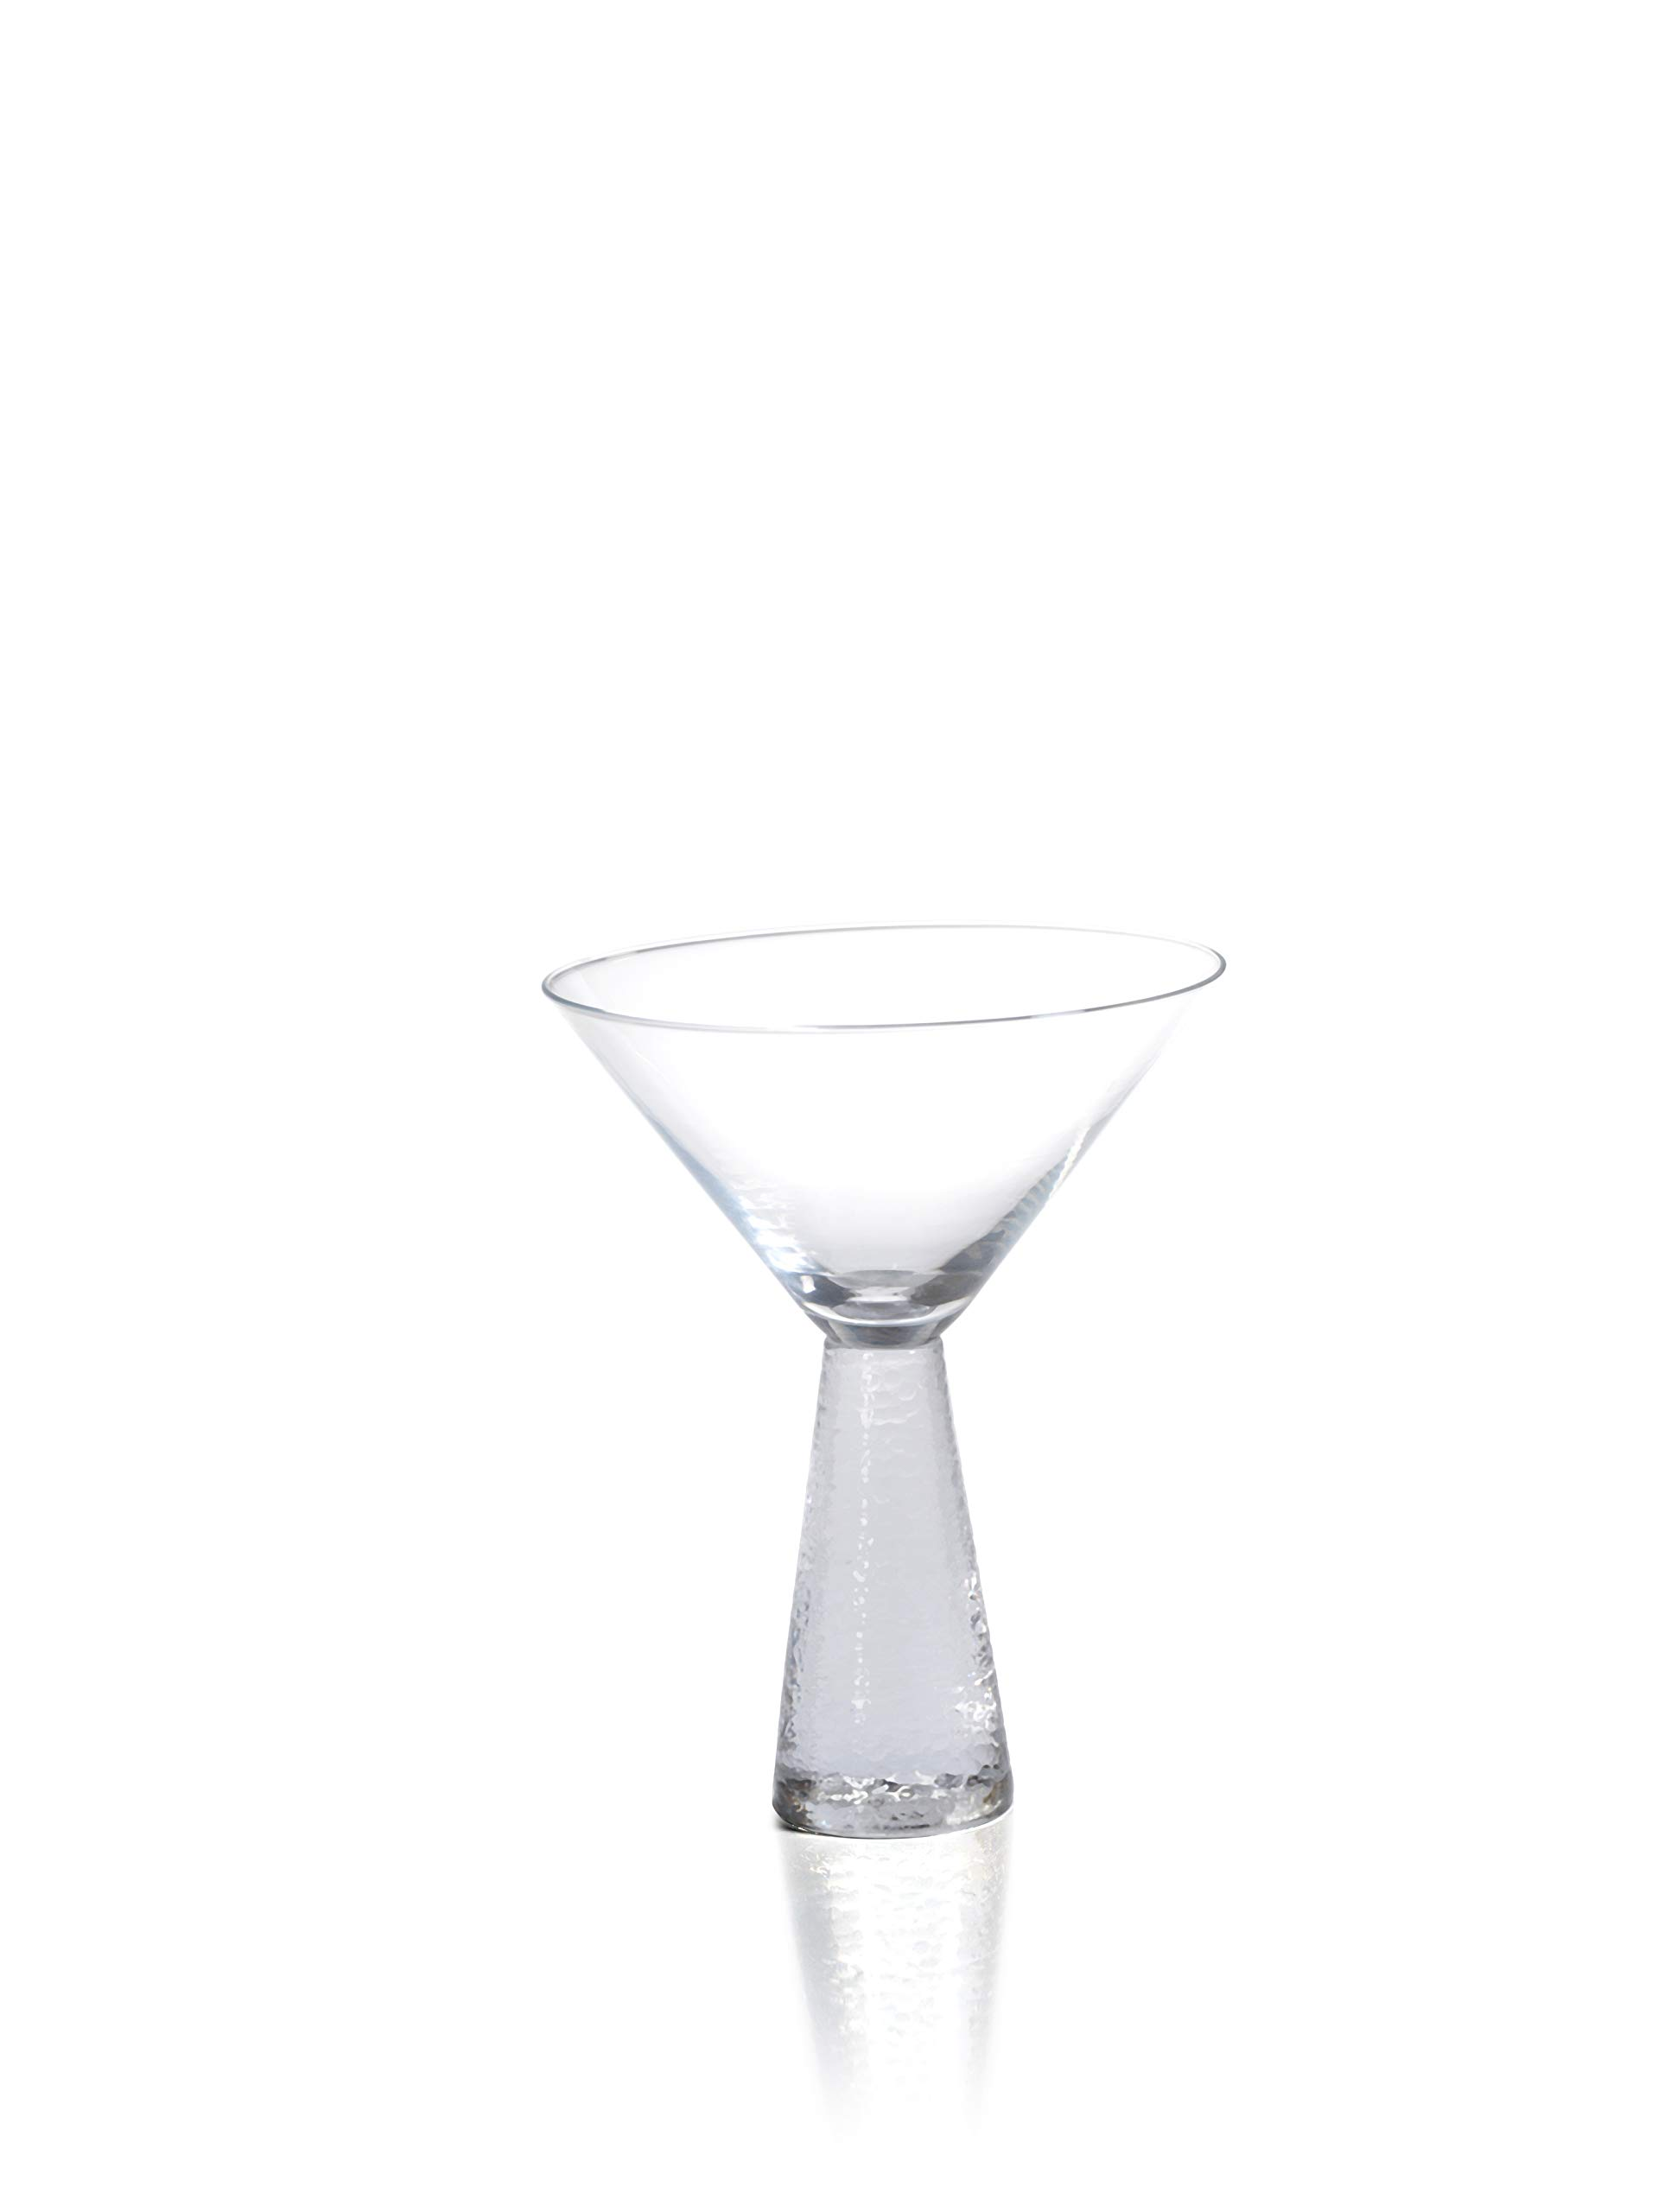 Zodax 6.25'' Tall Livogno Hammered Stem, (Set of 4) Martini Glasses, Clear by Zodax (Image #1)